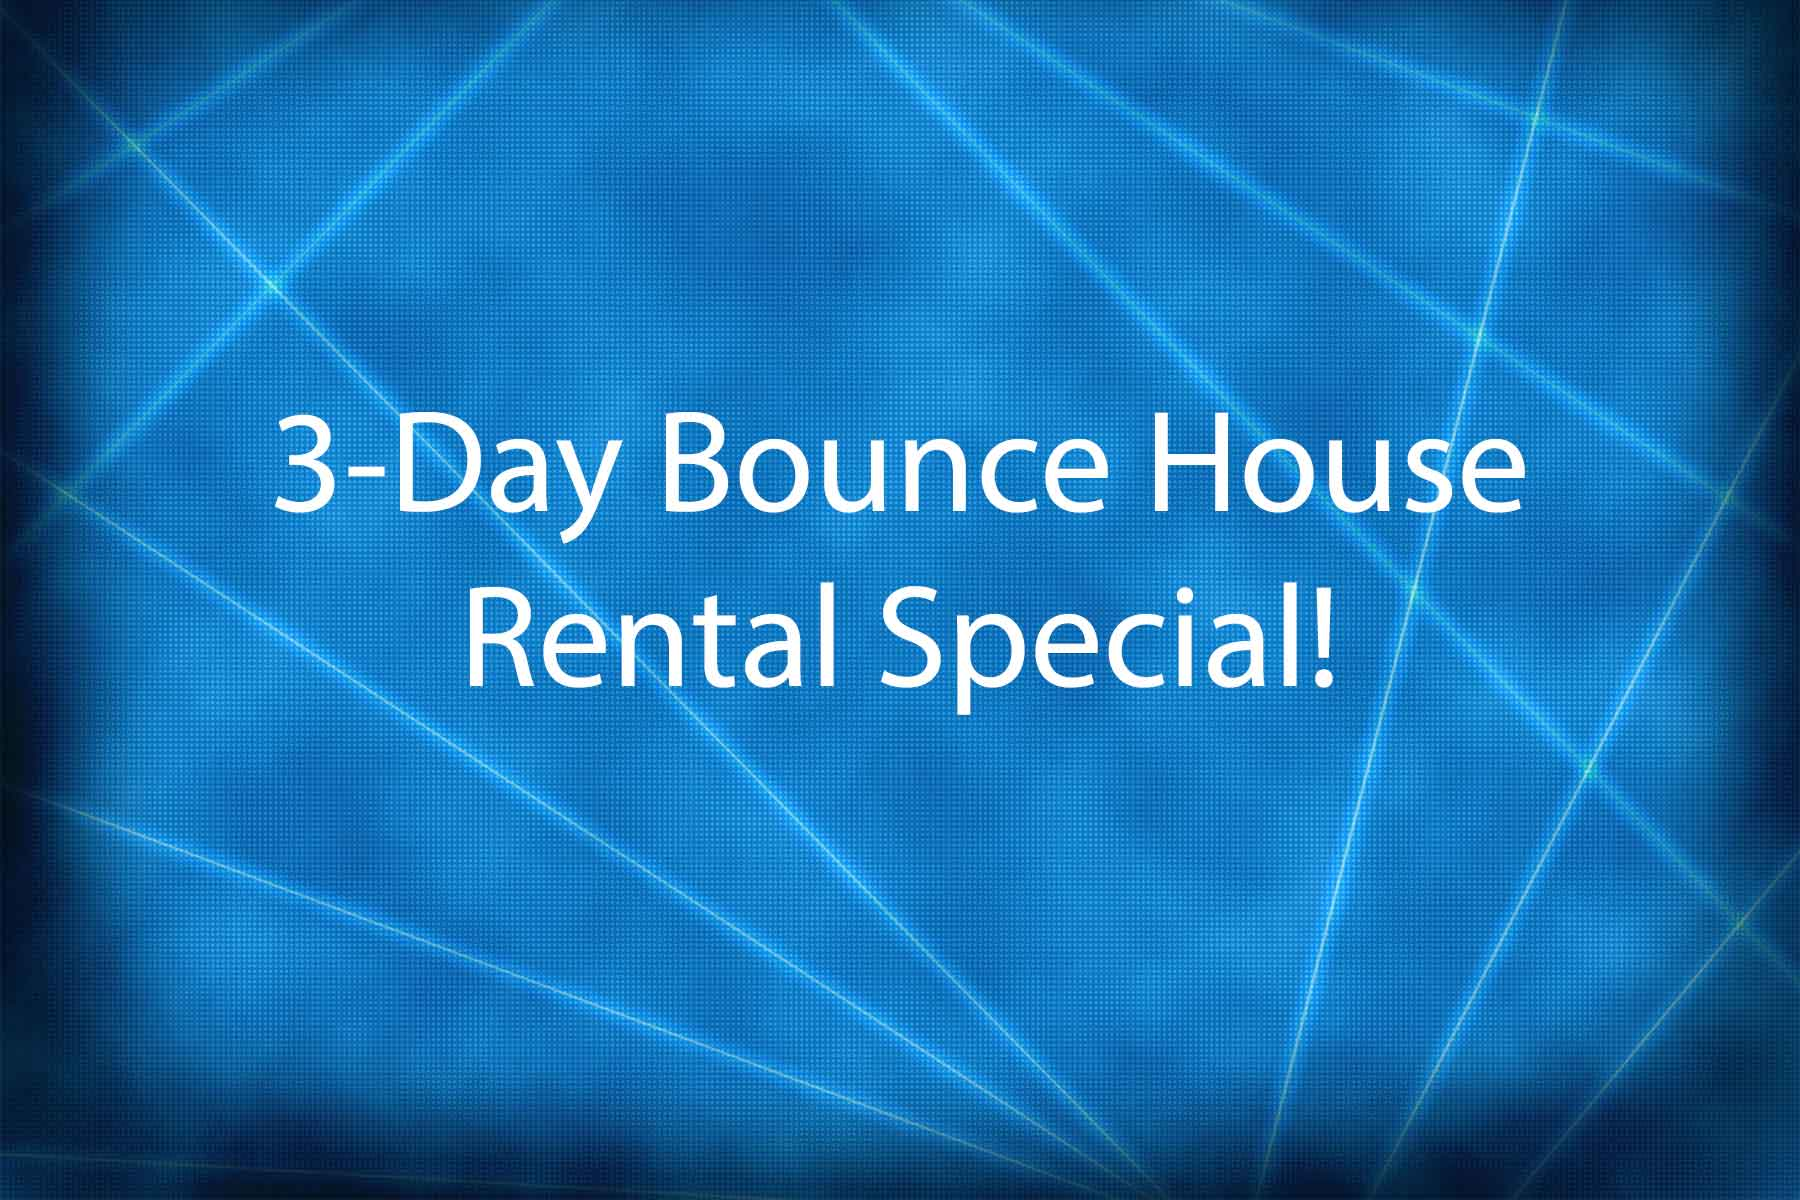 3 day bounce house special